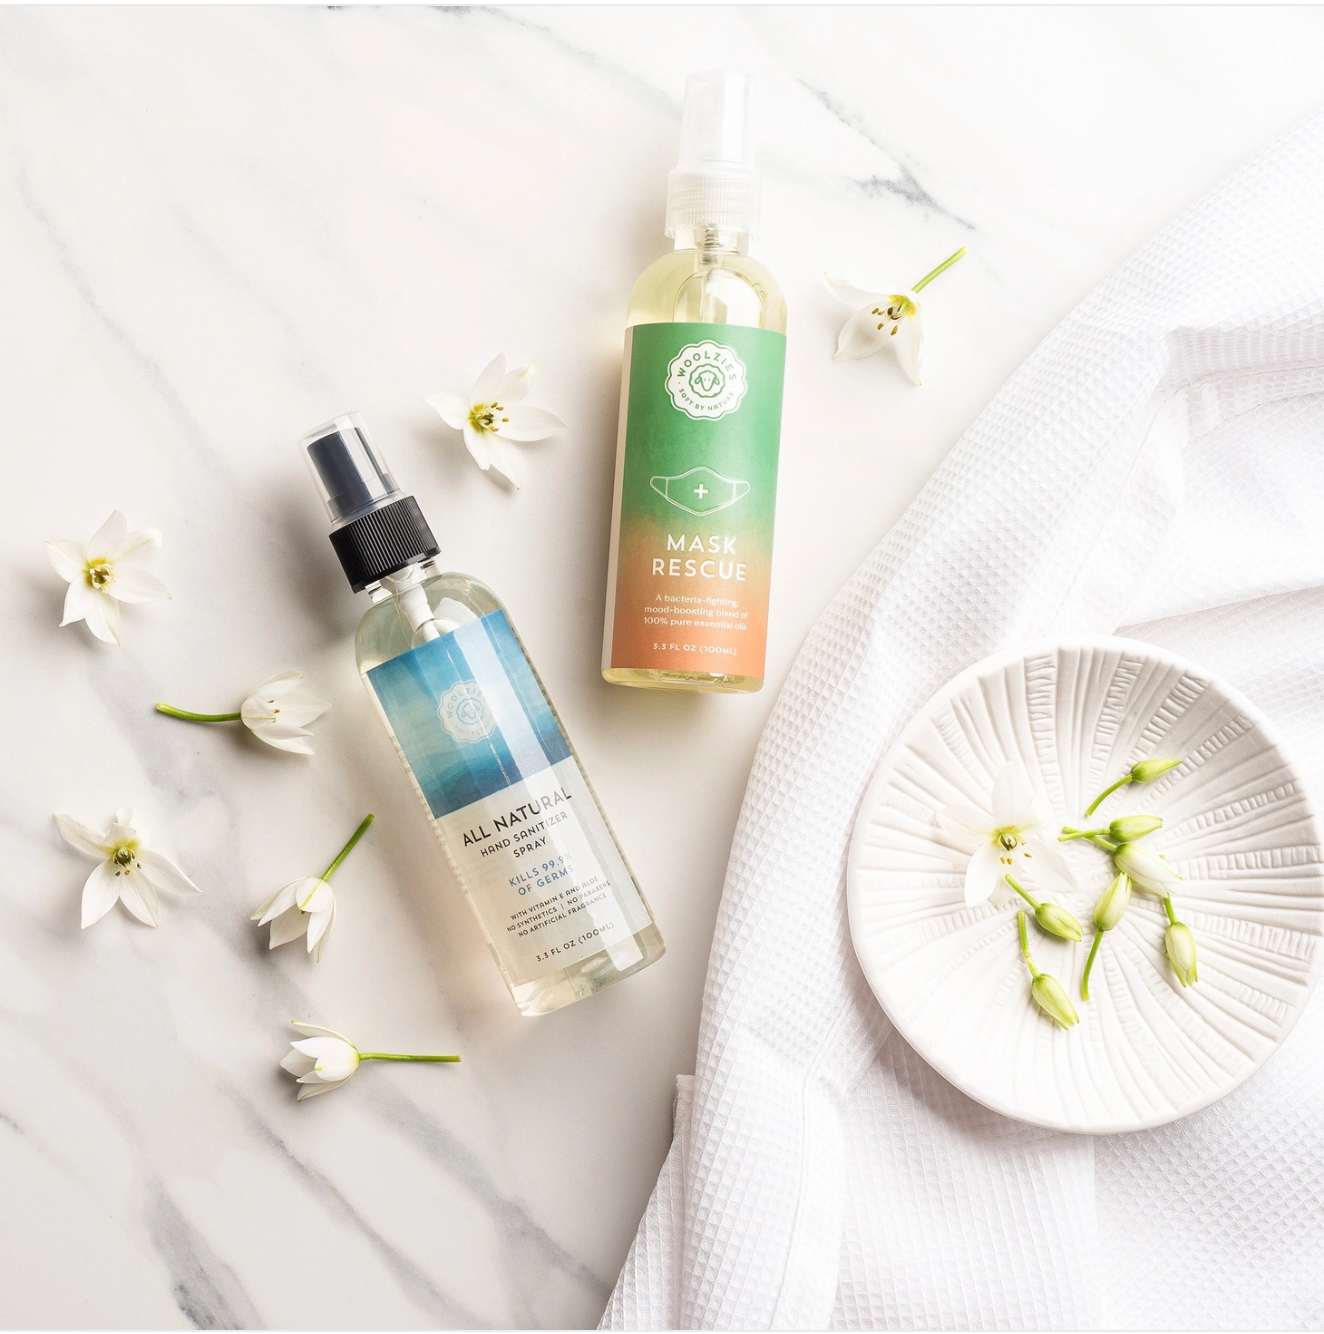 Woolzies Mask Rescue Spray